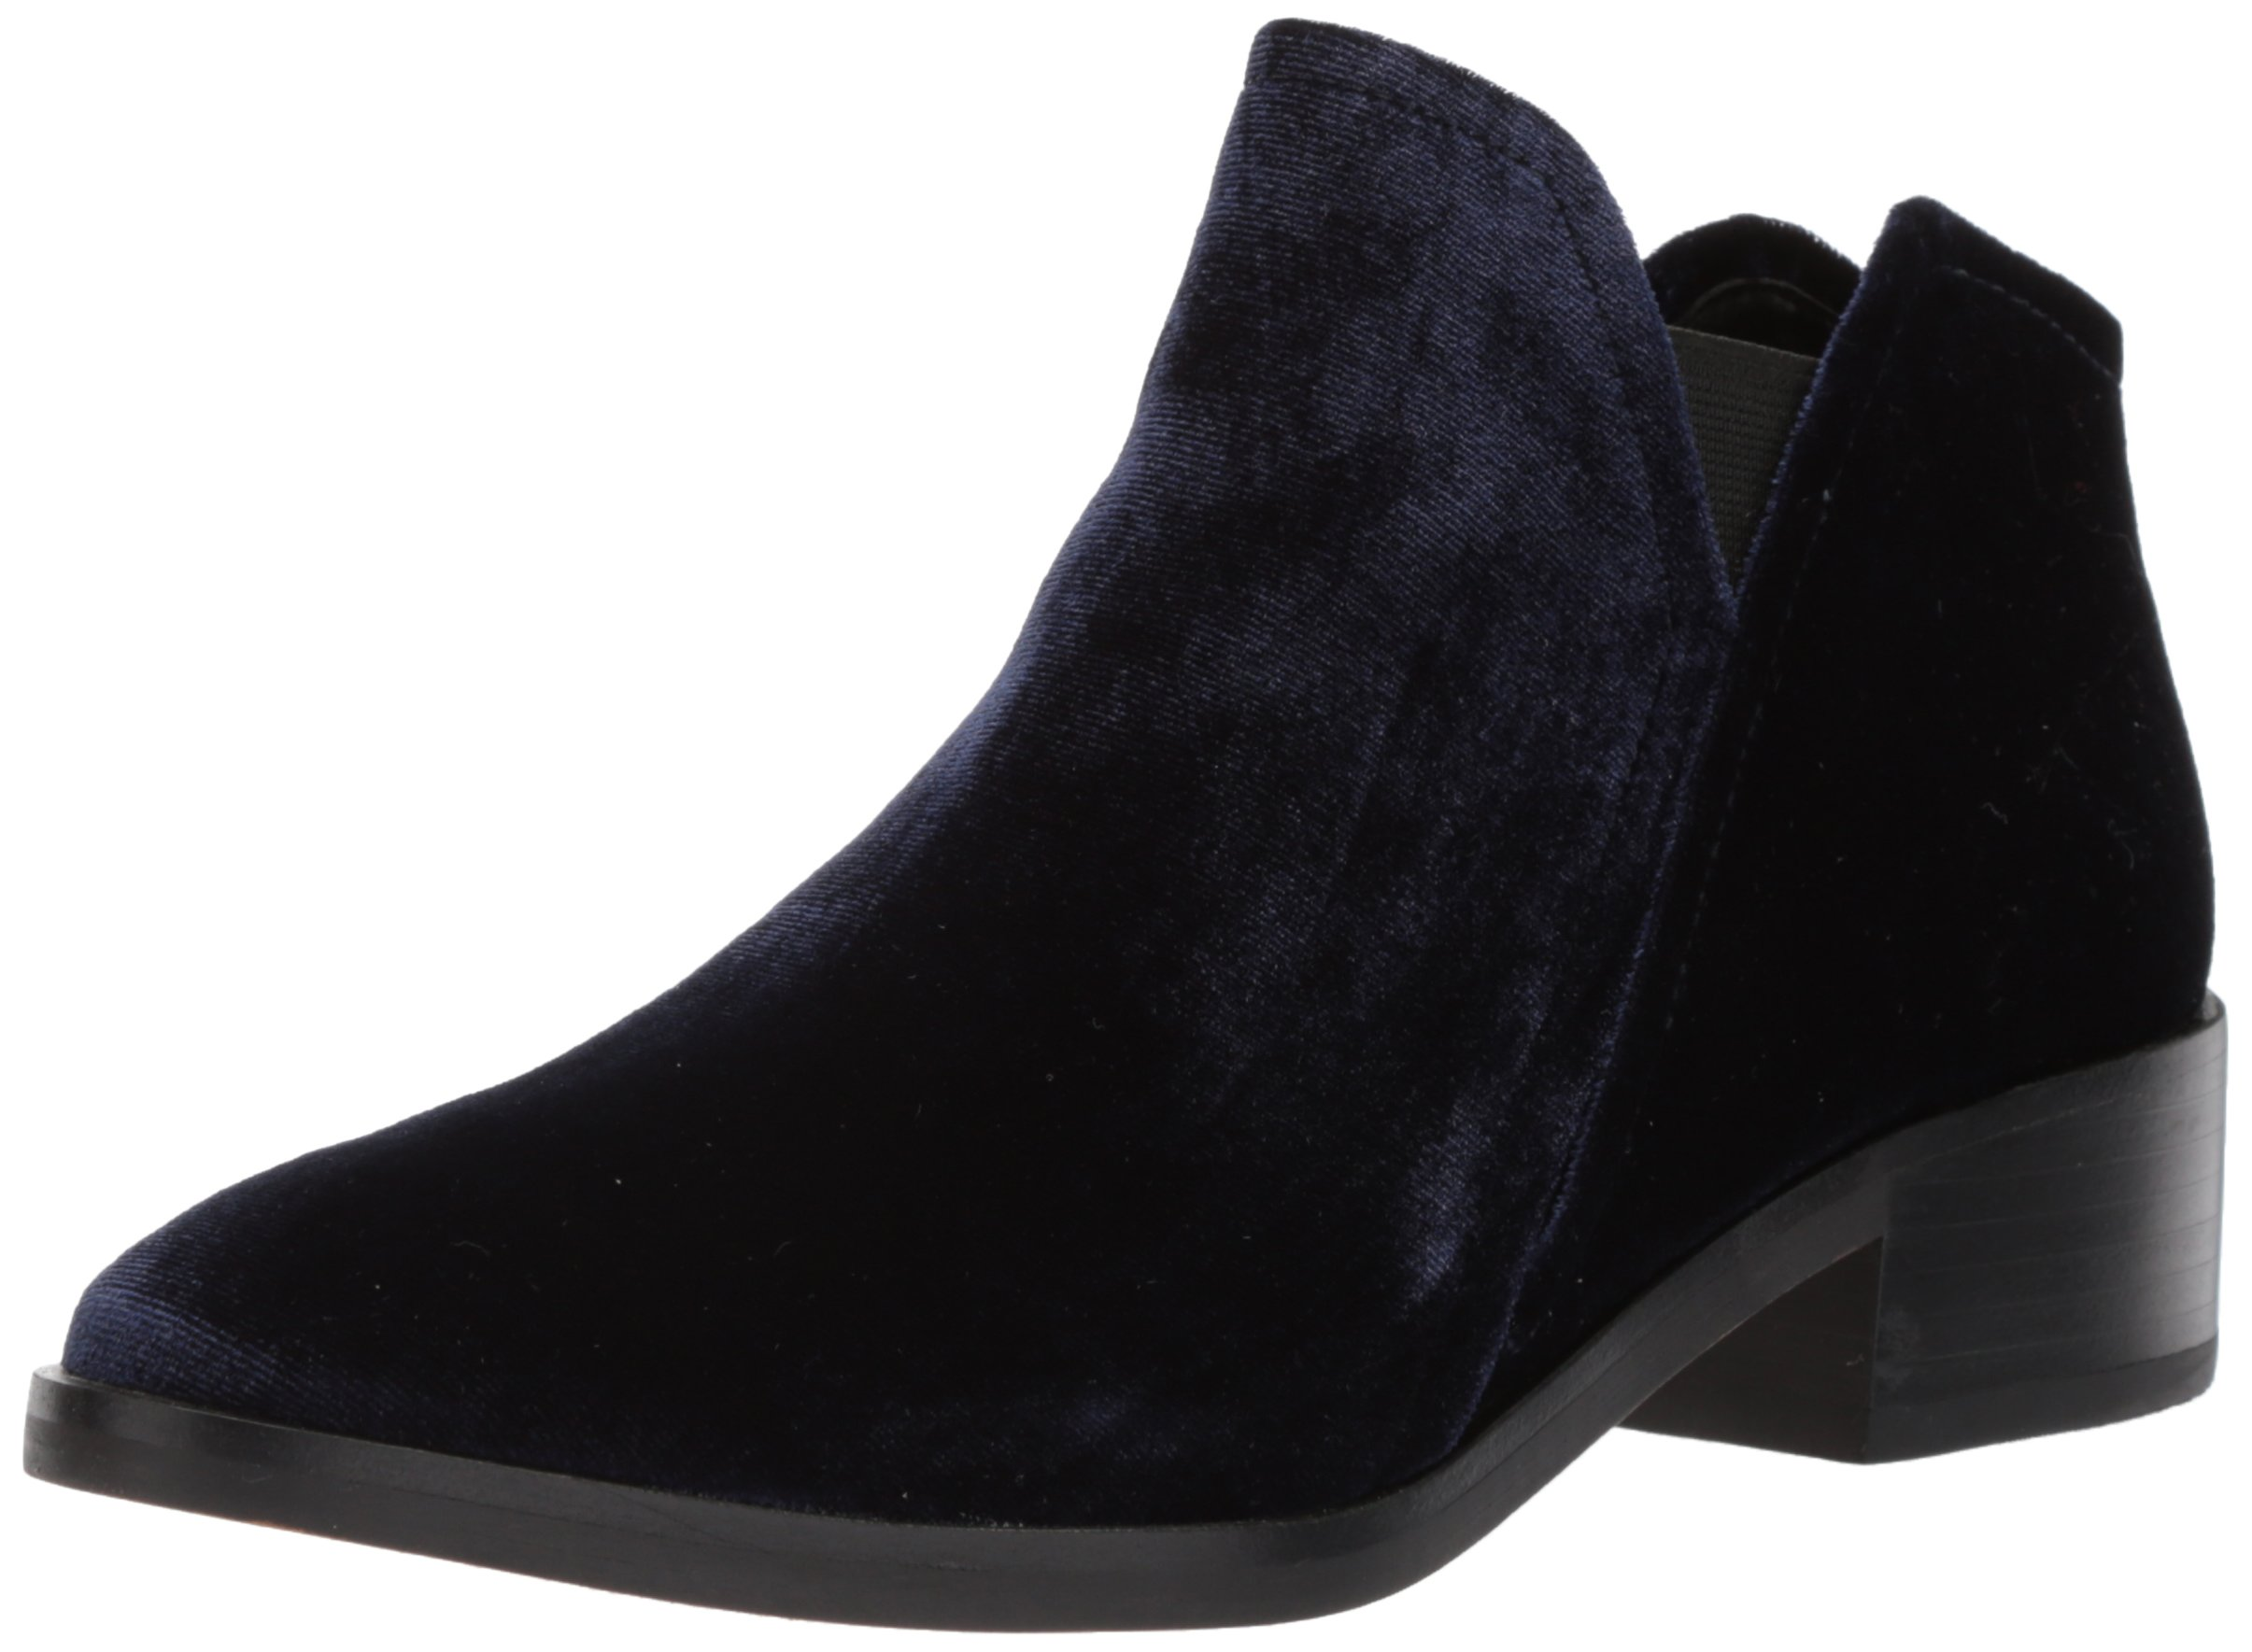 Dolce Vita Women's Tay Ankle Boot, Navy, 10 M US by Dolce Vita